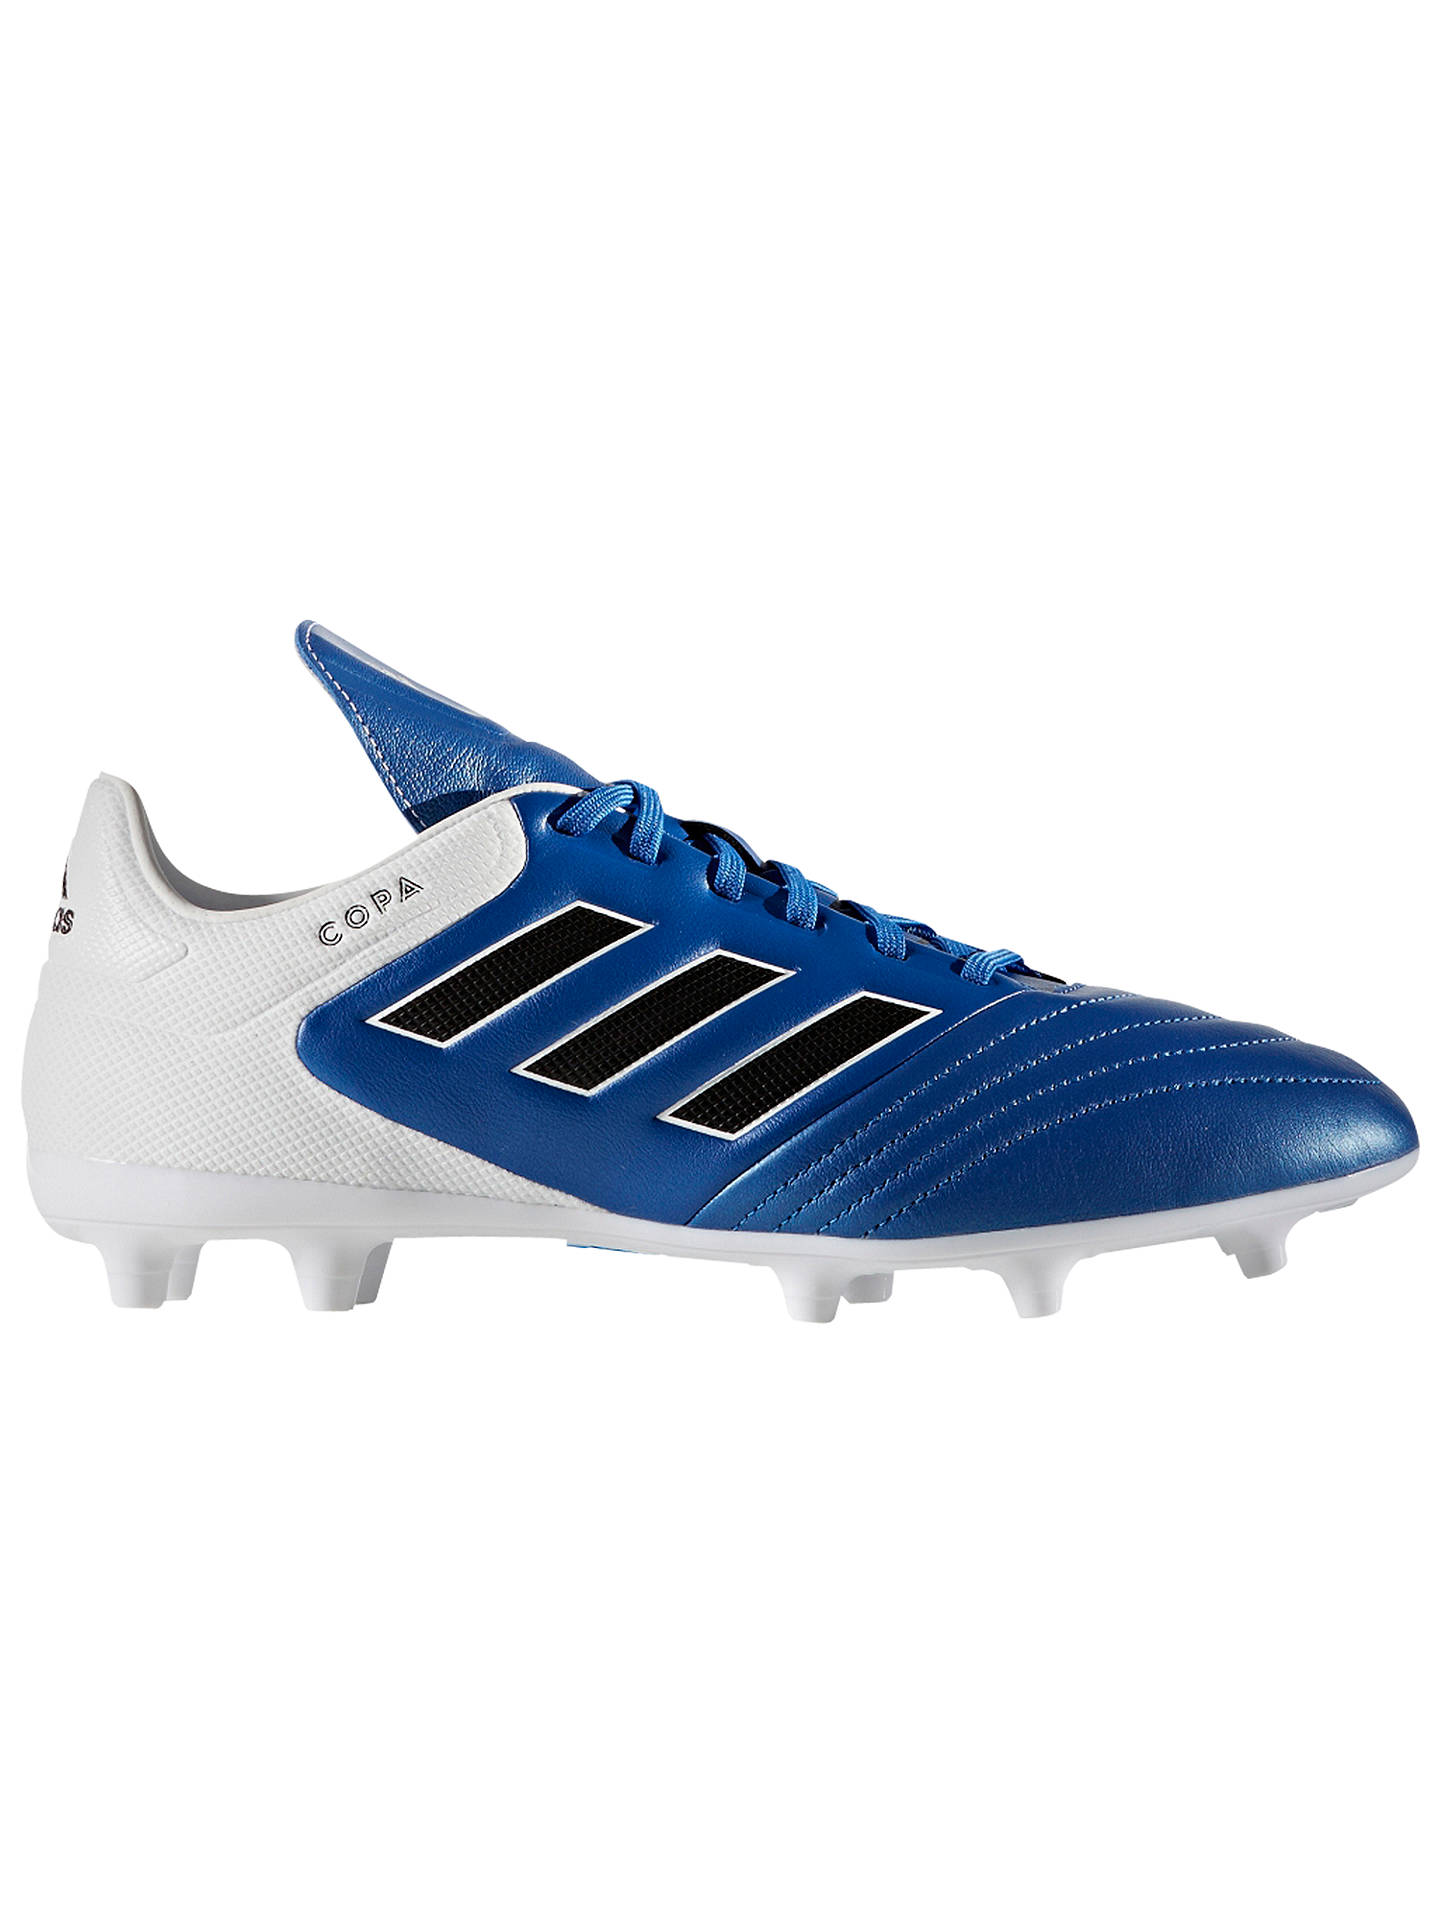 new concept 63f6c befdf BuyAdidas Copa 17.3 FG Mens Football Boots, BlueWhite, 7 Online at  johnlewis ...